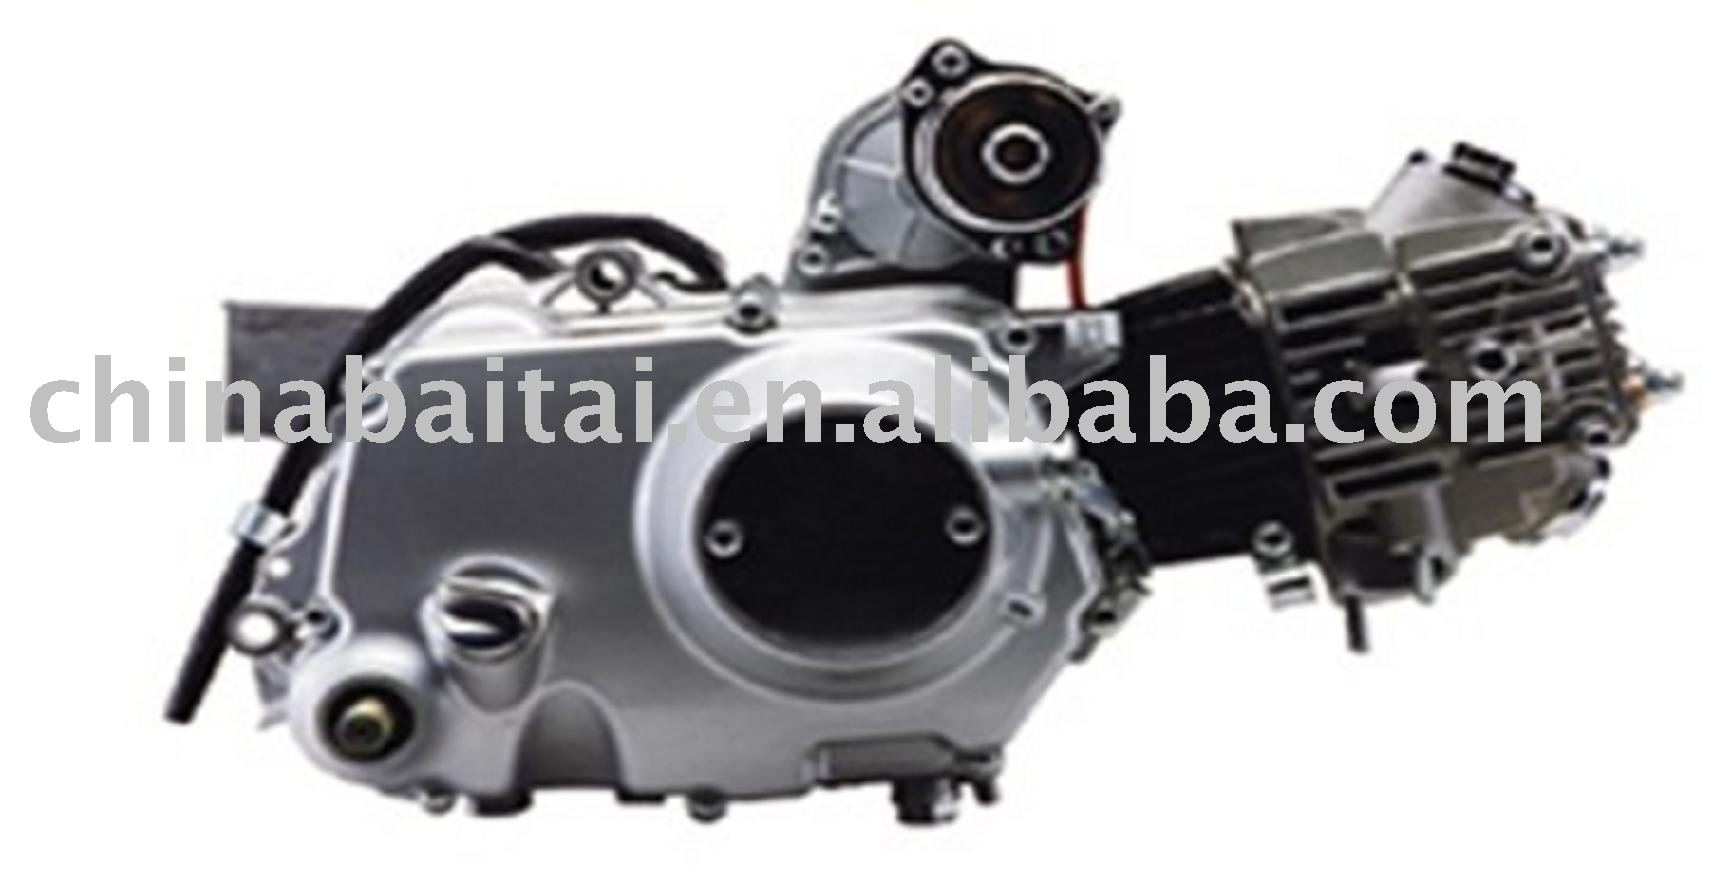 Mecânica dos motores - Página 2 50cc-engine-with-single-cylinder-4-stroke-air-cooled-horizontal